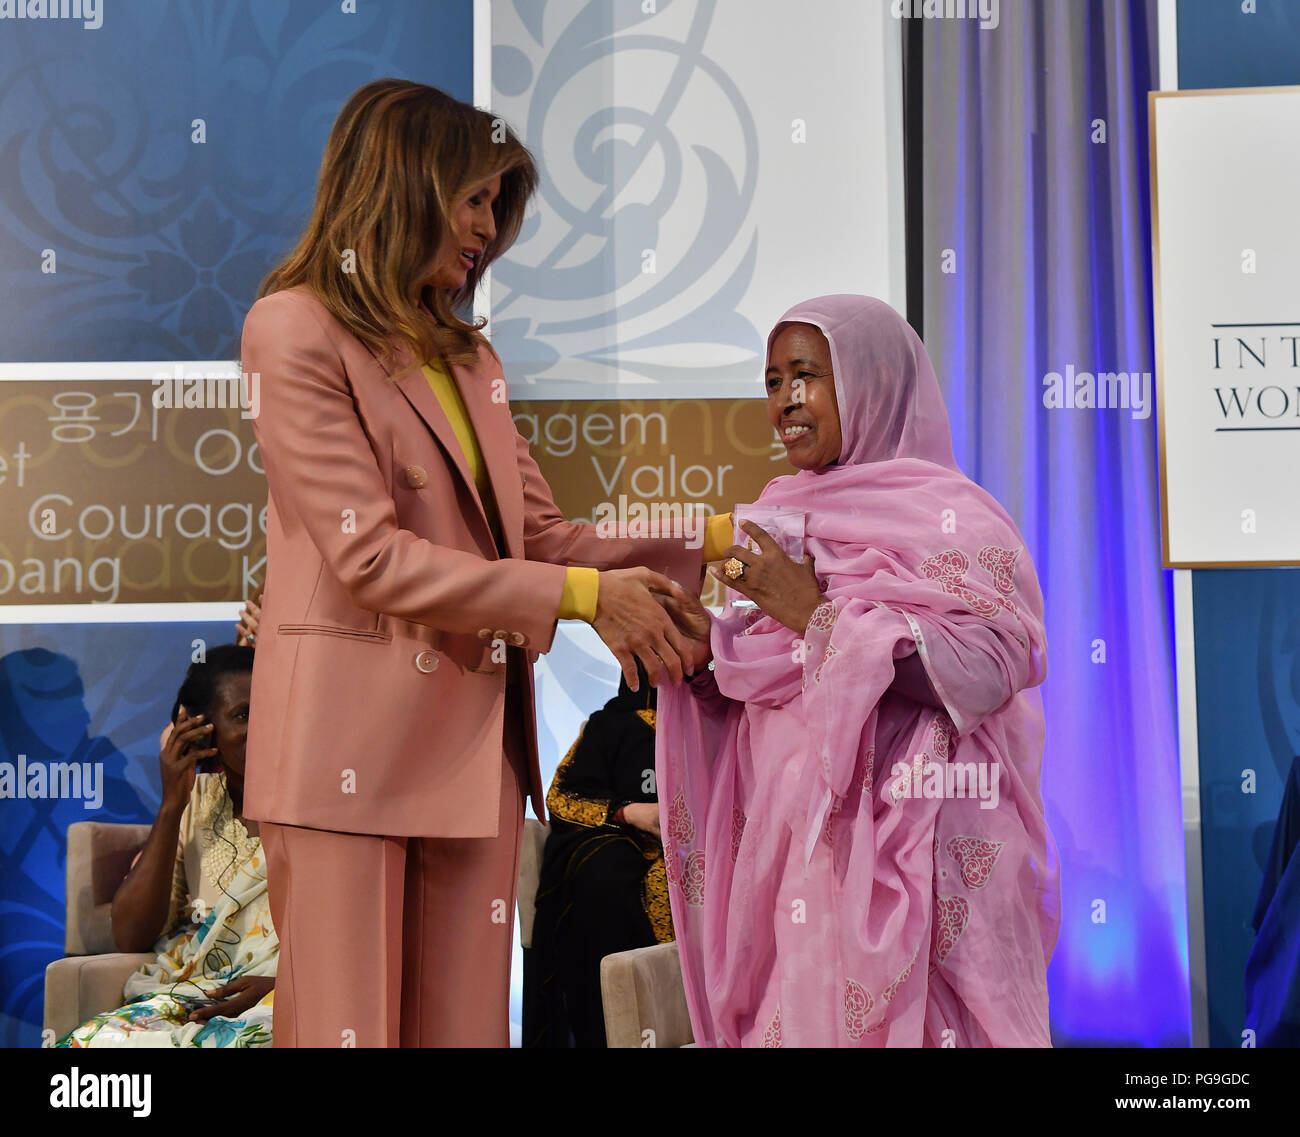 First Lady of the United States Melania Trump presents the 2018 International Women of Courage (IWOC) Award to L'Malouma Said of Mauritania during a ceremony at the U.S. Department of State in Washington, D.C. on March 23, 2018. Stock Photo